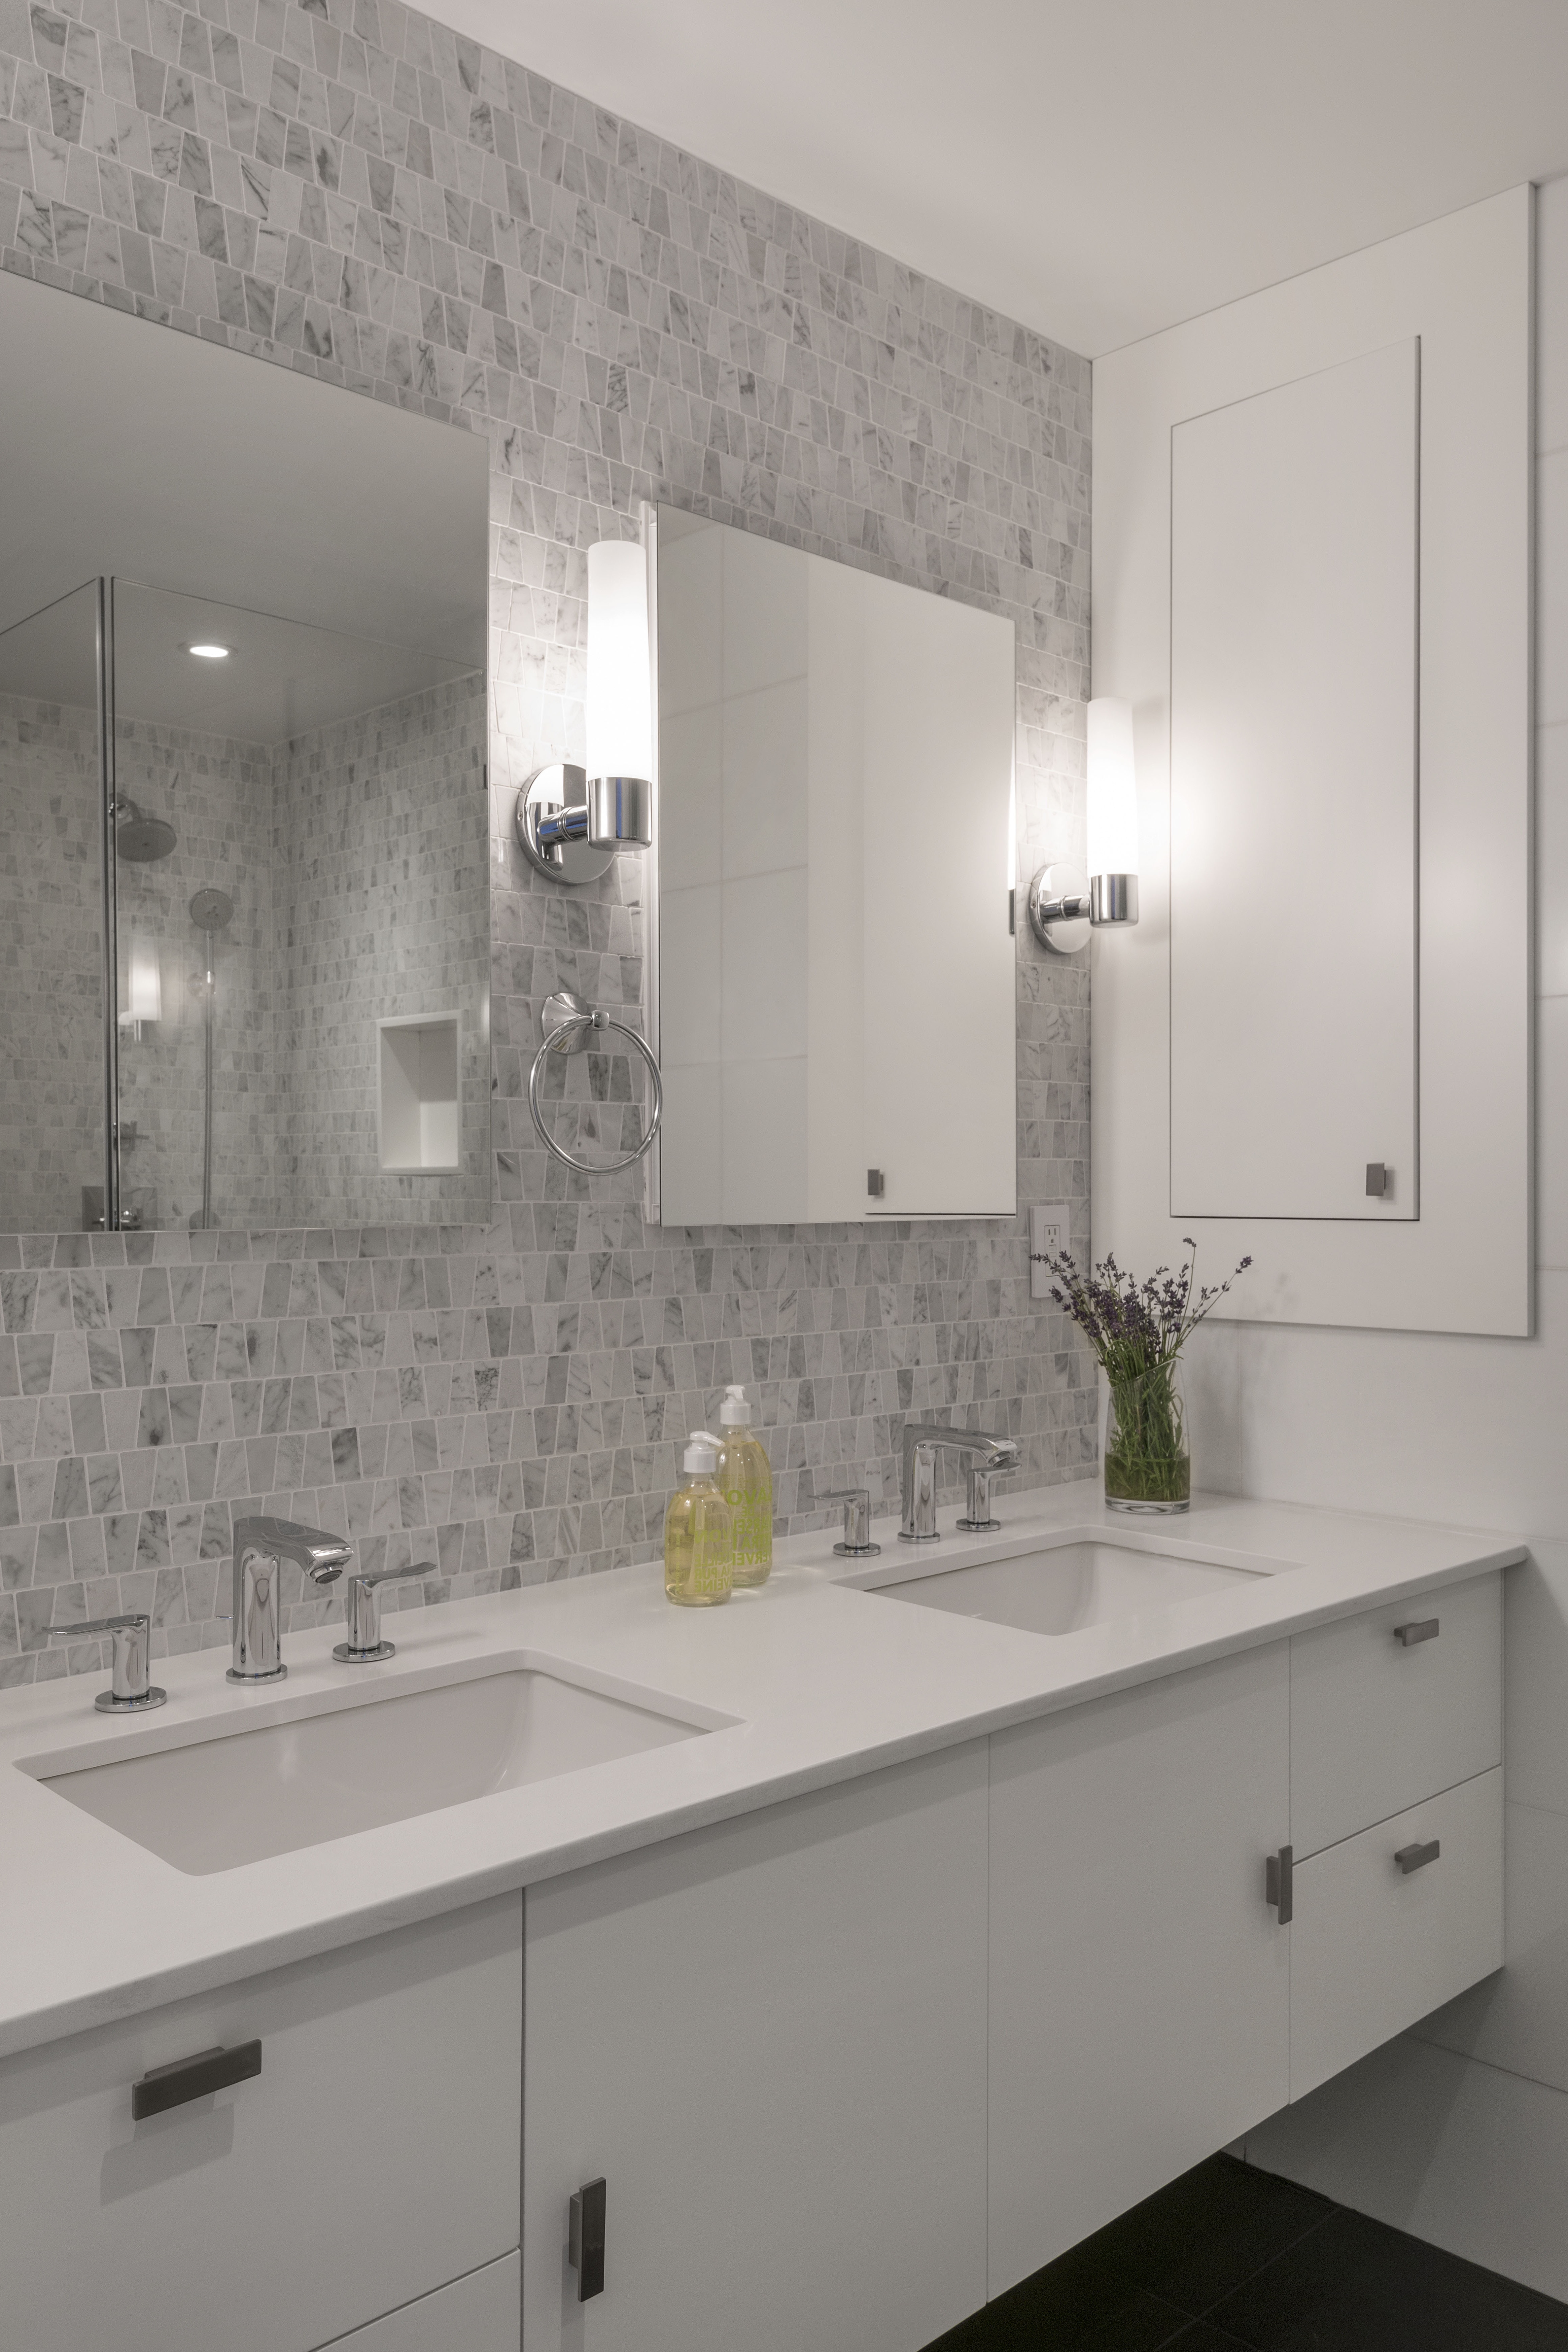 Best ideas about Tile Accent Wall In Bathroom . Save or Pin Bath Tile Designs That Transform A Bathroom Now.